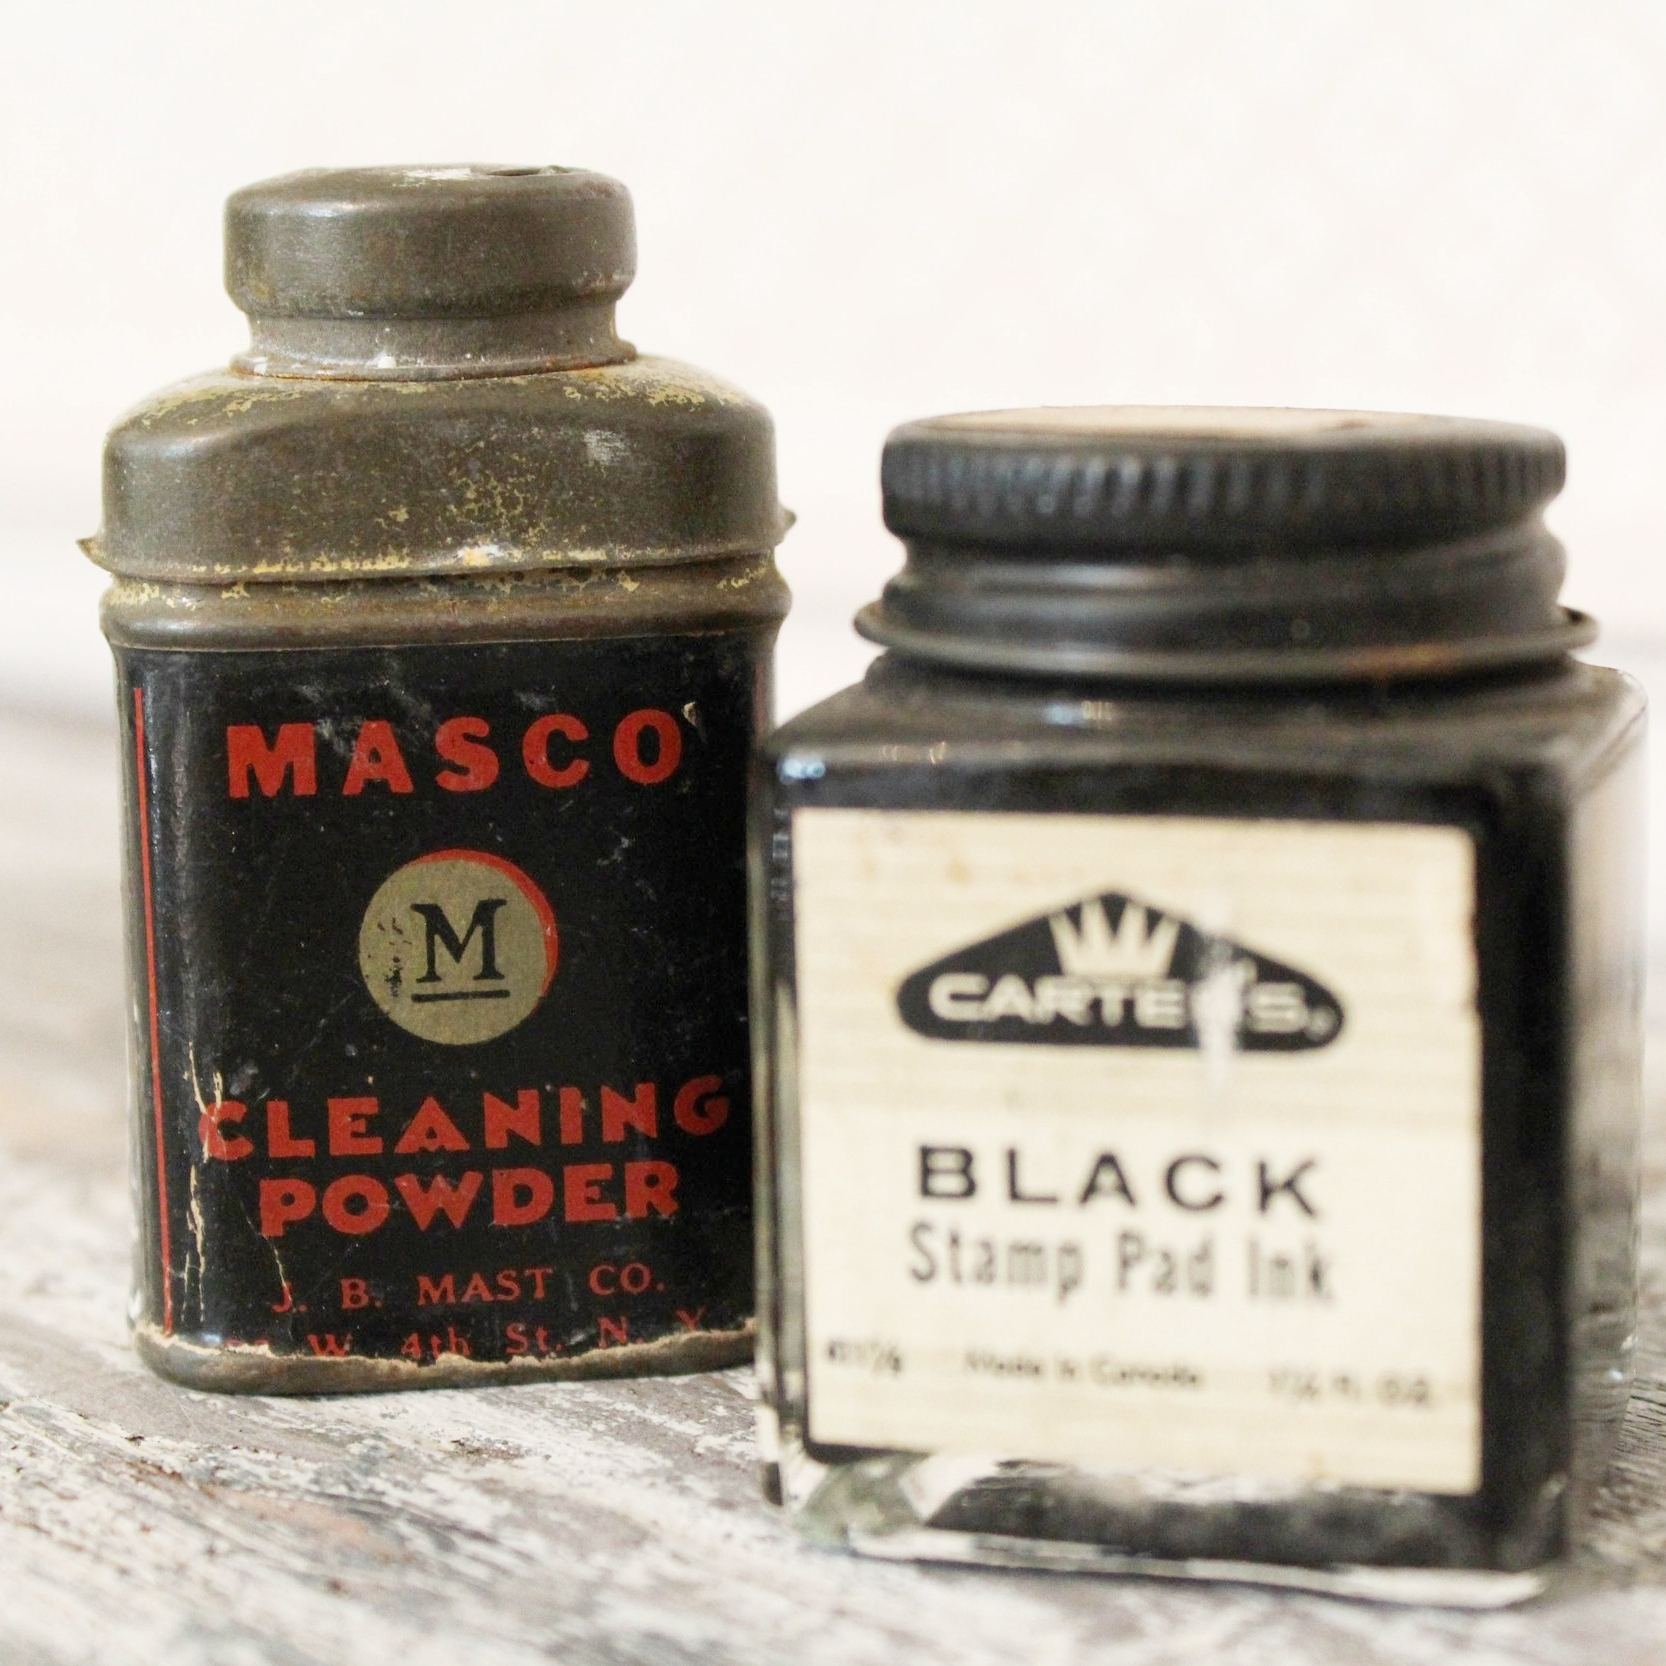 Ink Bottles (set of 2) - $16 | A set of bottles from the Shudde Bro. Both are in vintage condition and show signs of aging which only adds to their unique character.Bottles Include: CARTER'S Black Stamp Pad Ink and MASCO Cleaning Powder